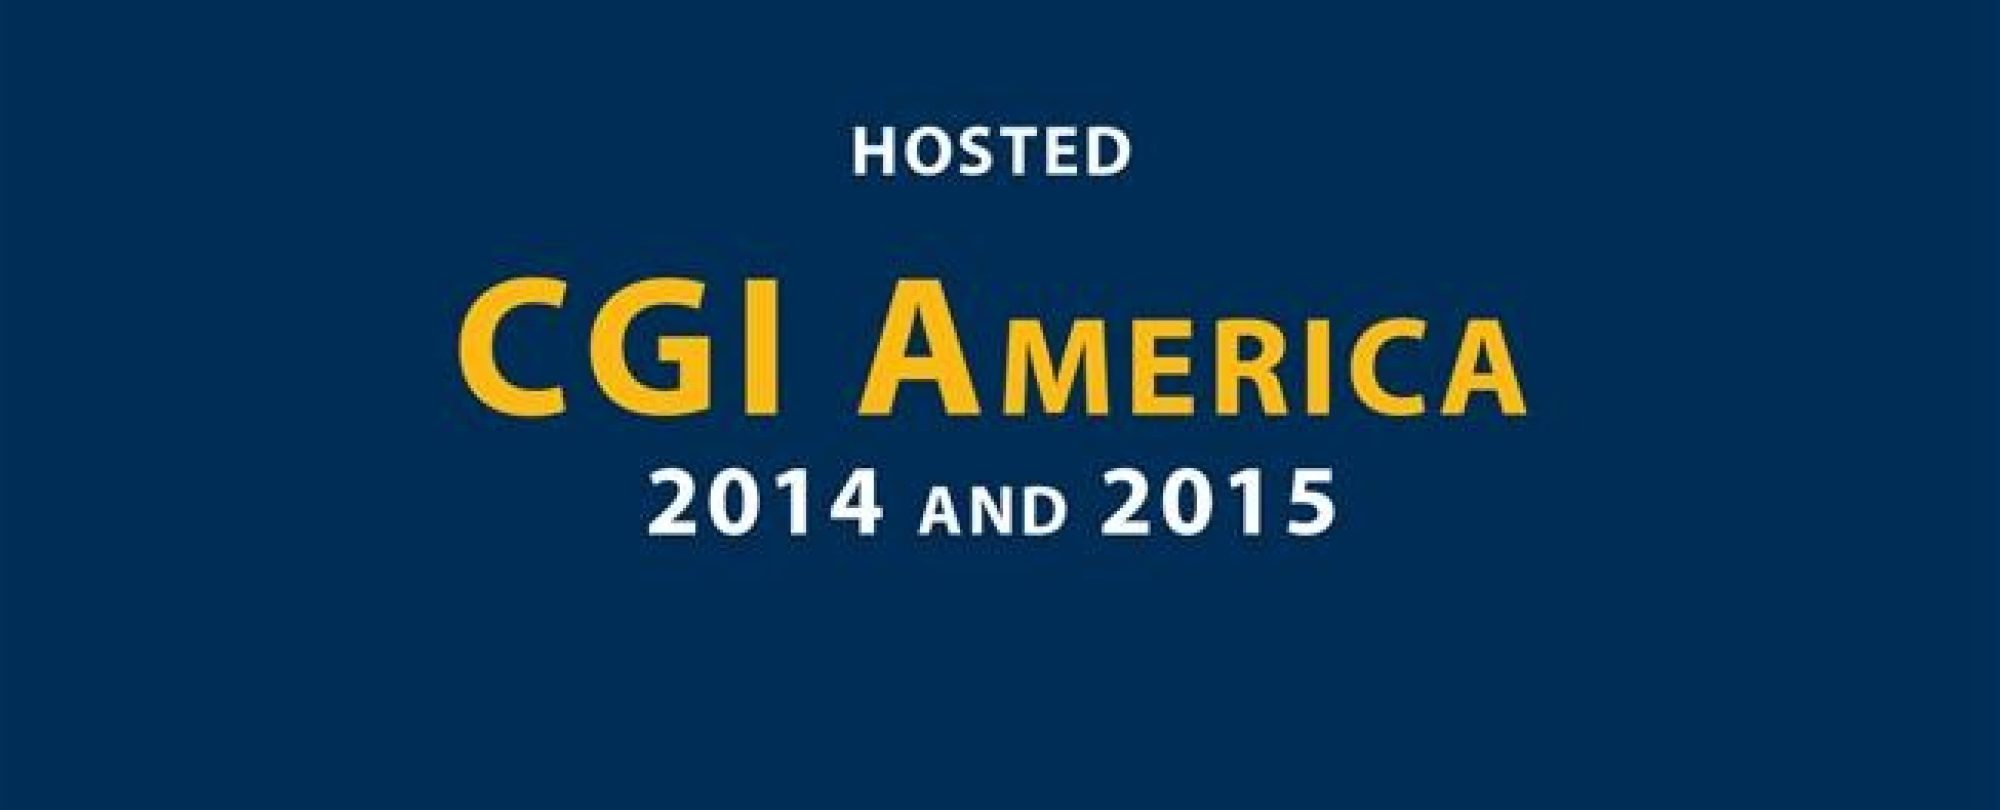 Hosted CGI America 2014 and 2015